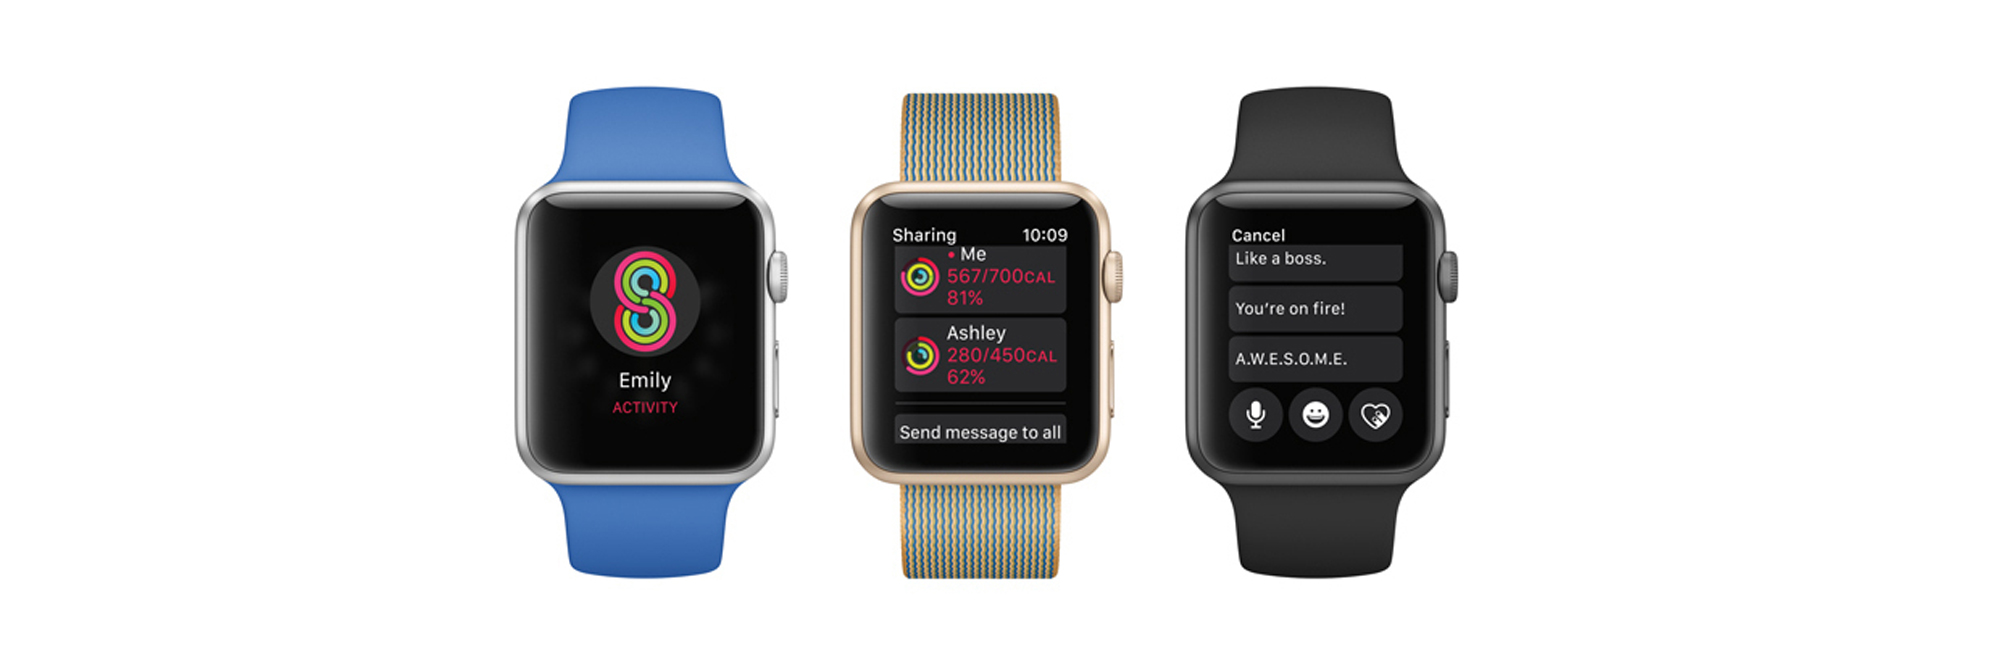 Sharing Apple Watch Activity with Friends and Family